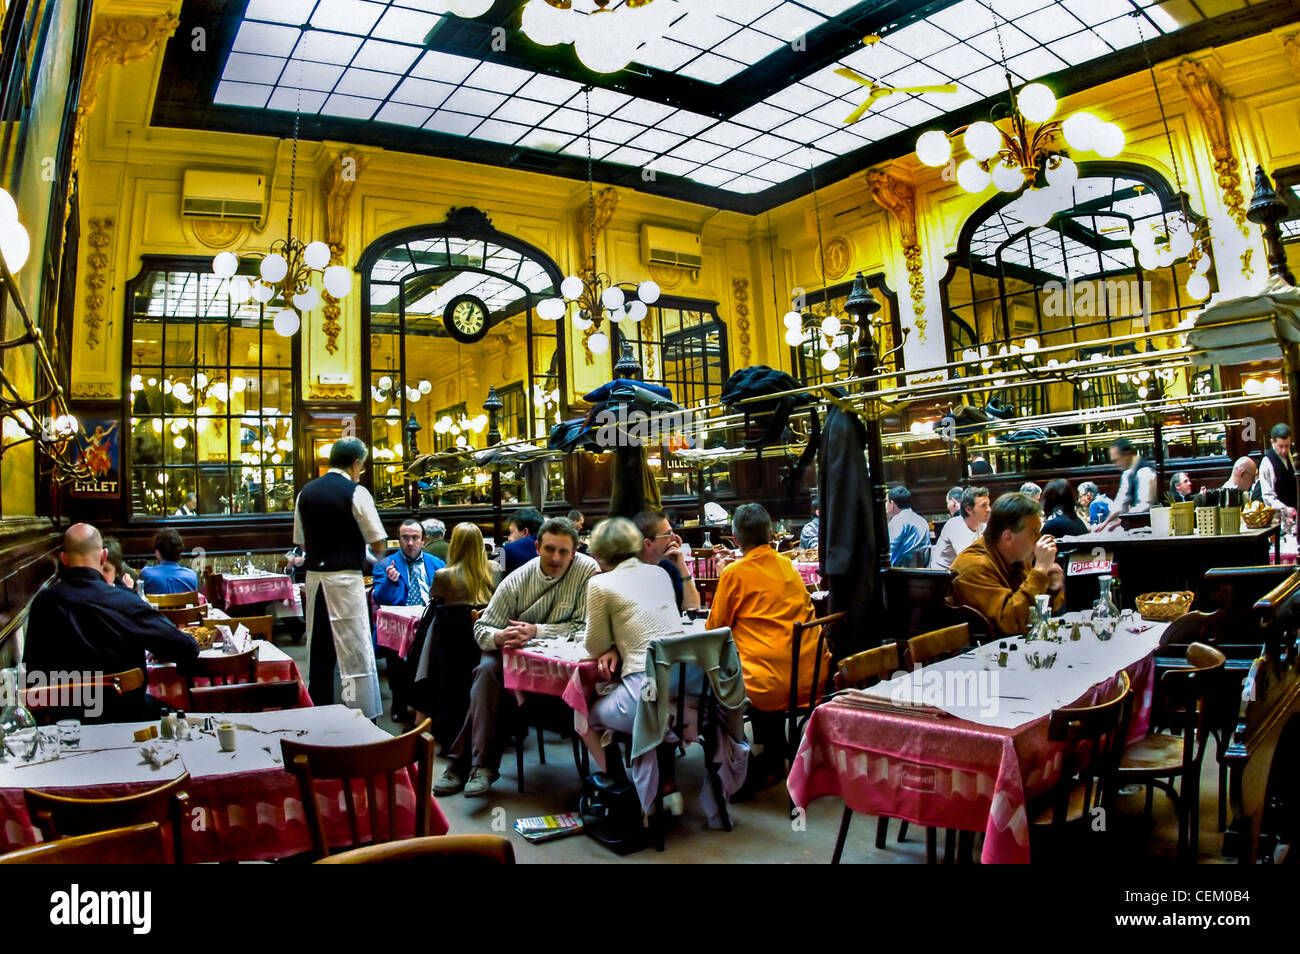 paris france people sharing meals inside chartier budget french